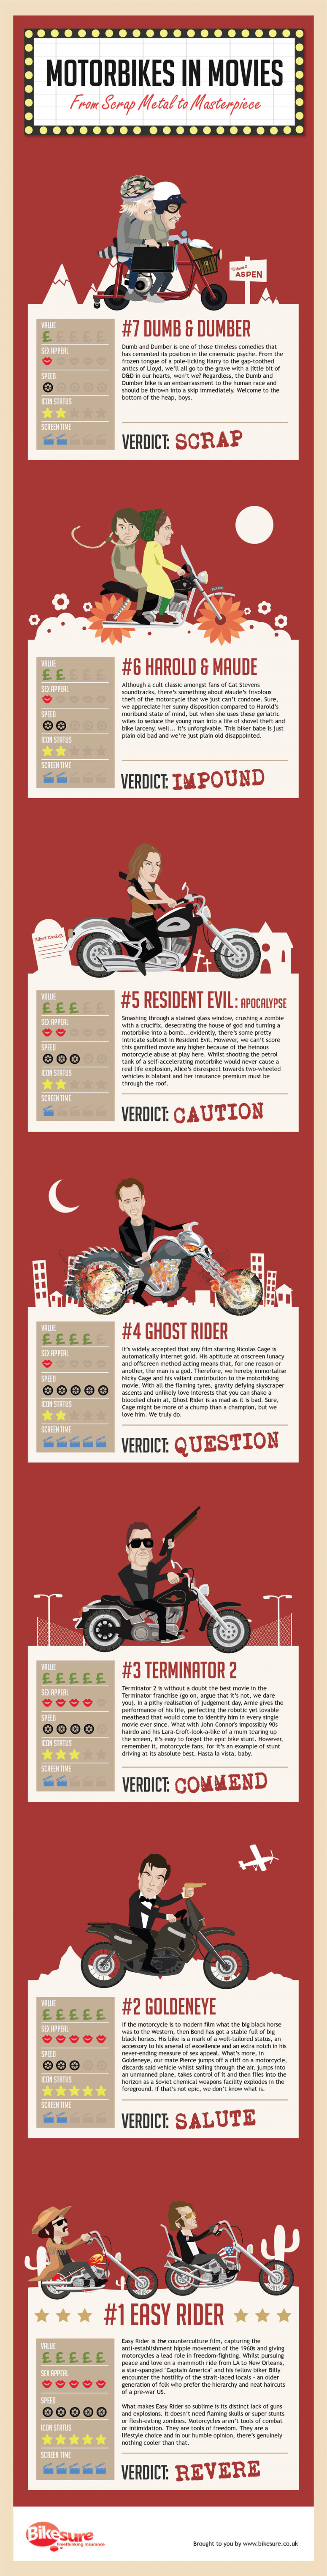 Motorbikes in Movies: From Scrap Metal to Masterpiece Infographic